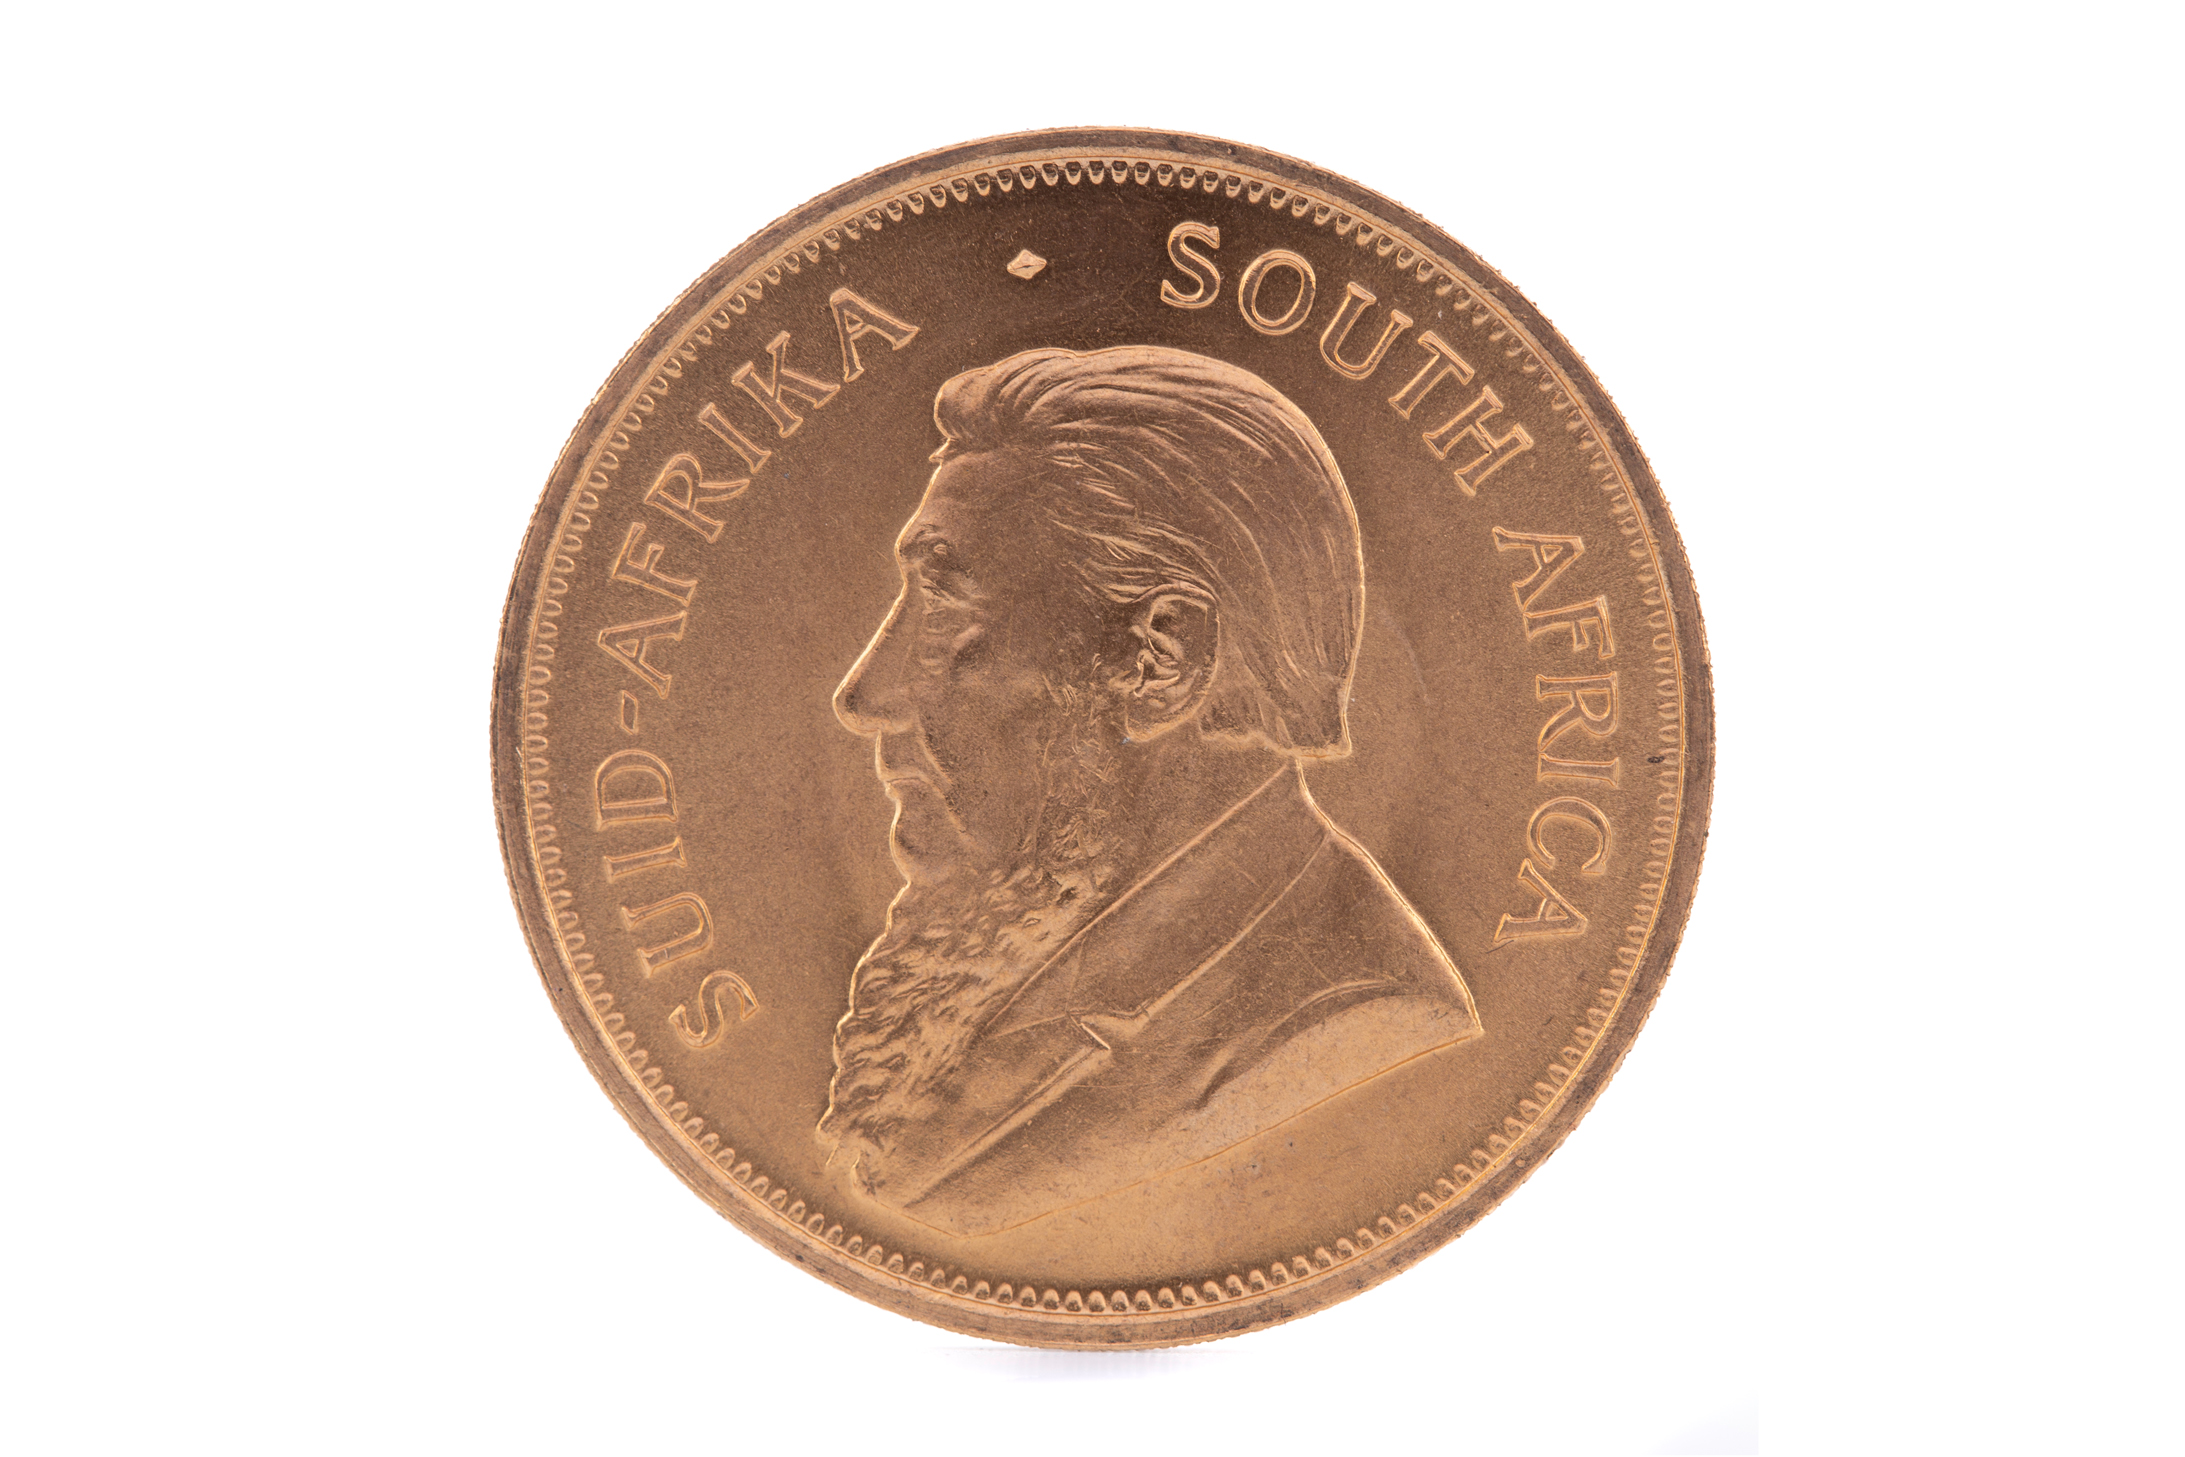 A GOLD KRUGERRAND DATED 1974 - Image 2 of 2